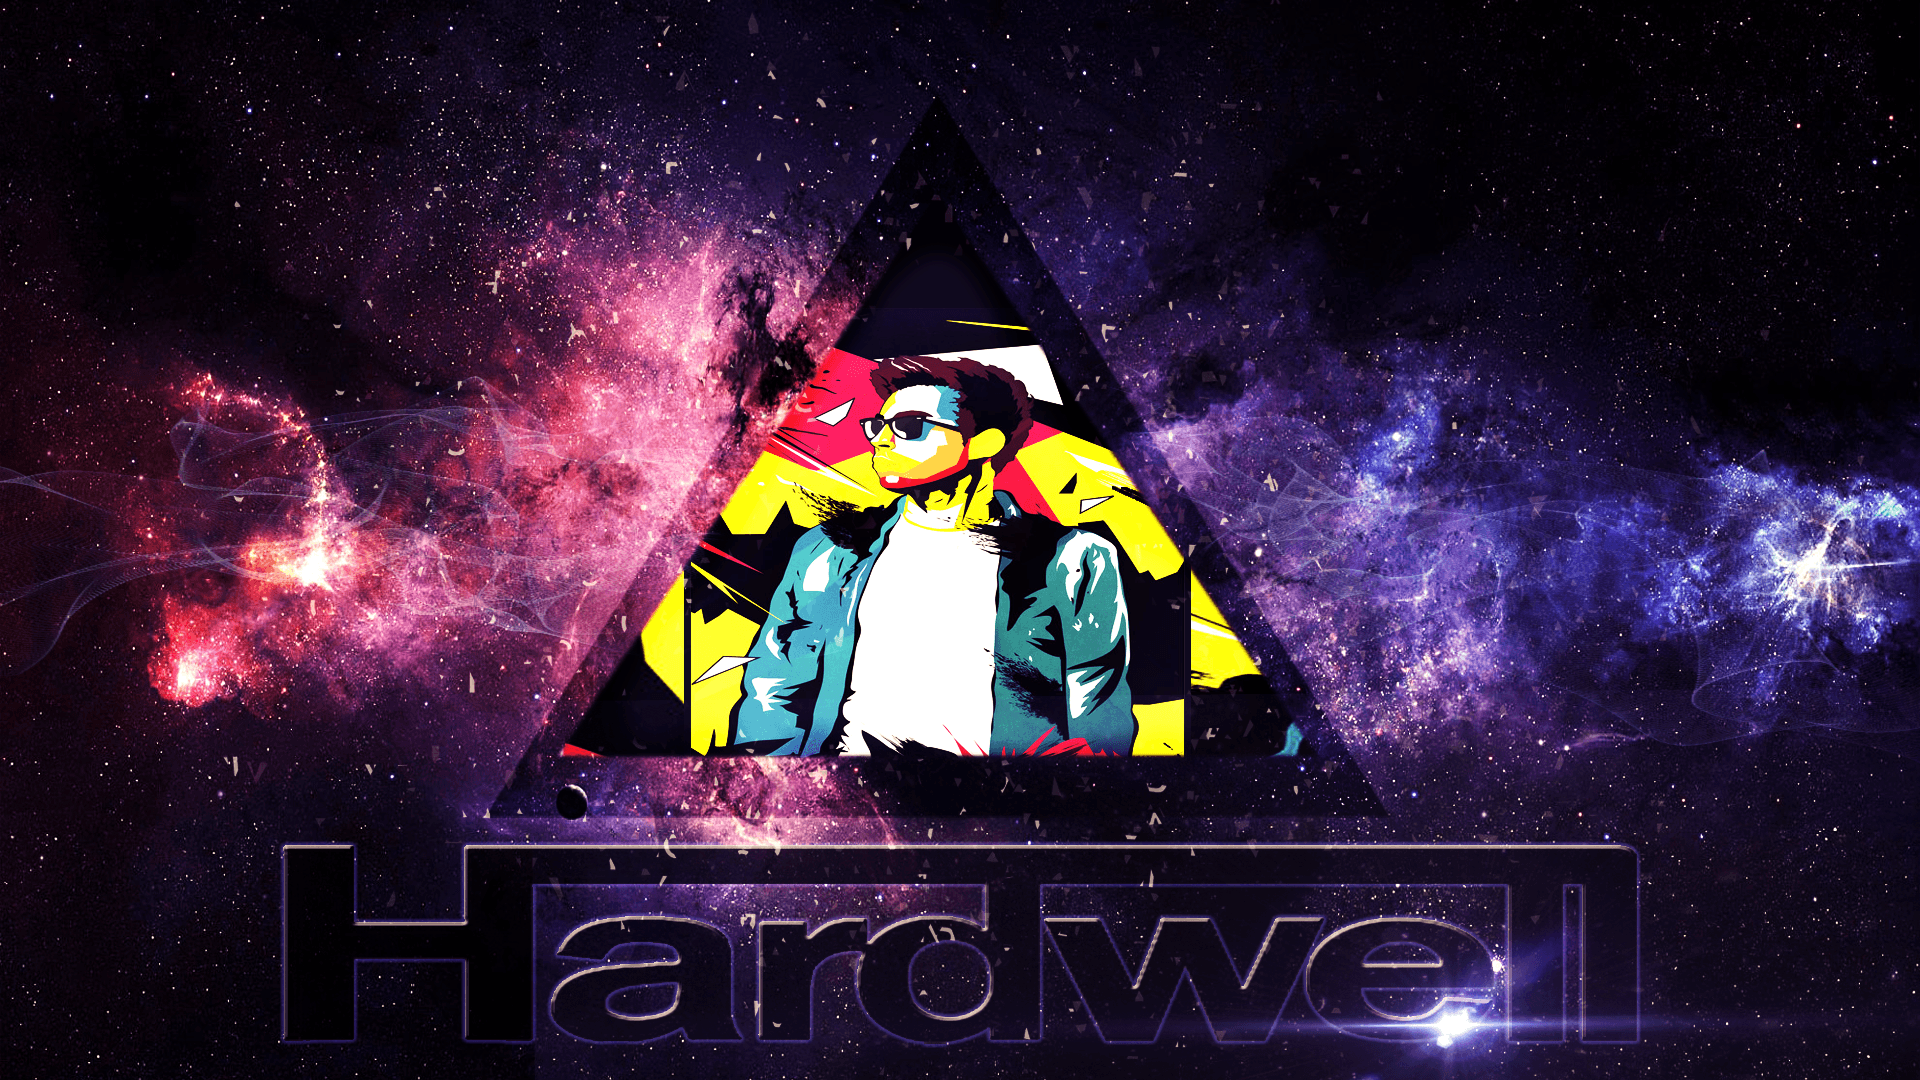 hardwell wallpaper hd - photo #7